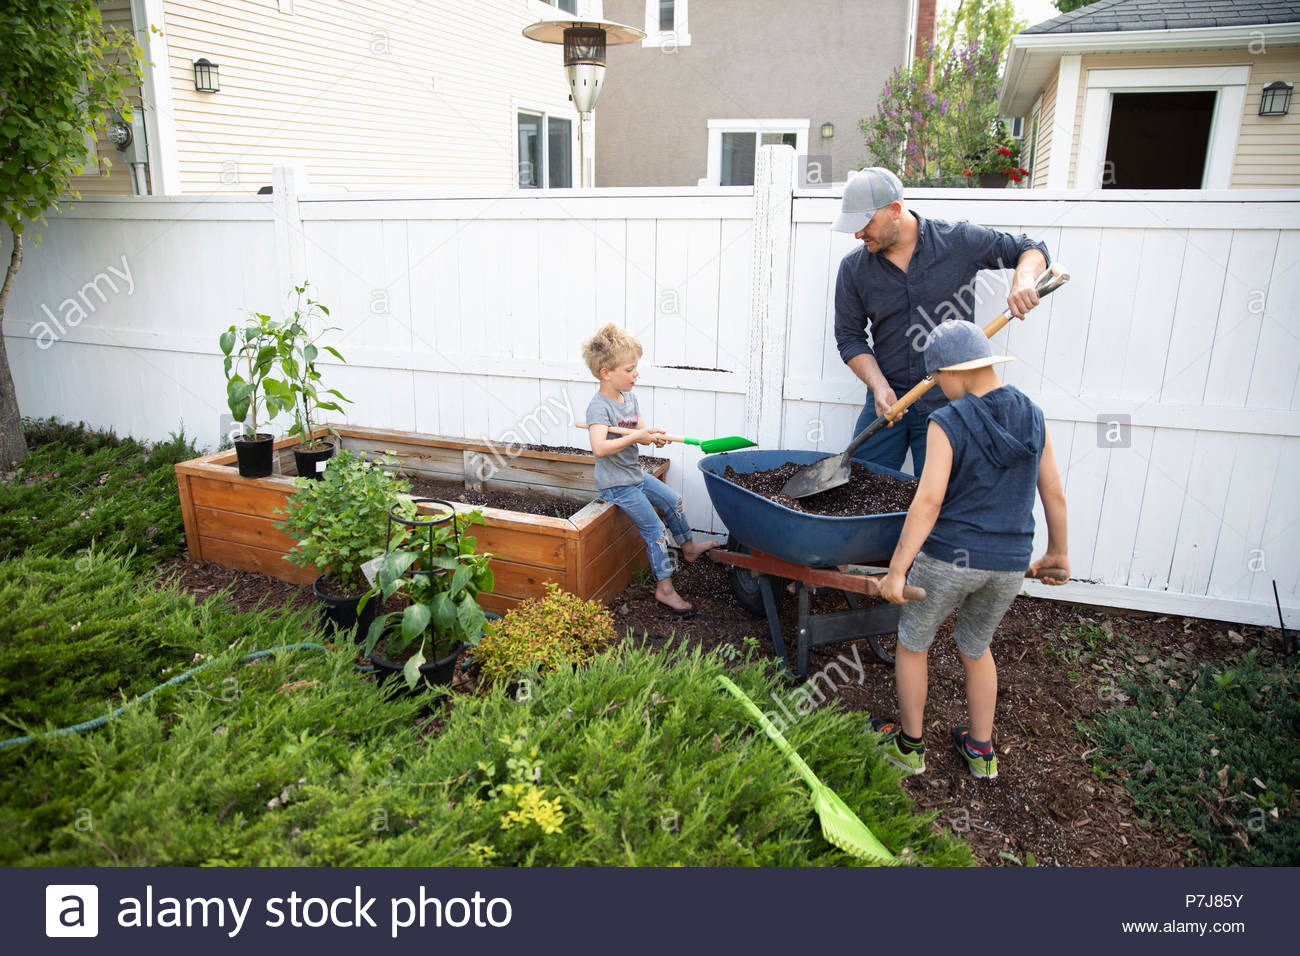 Father and sons gardening in back yard - Stock Image